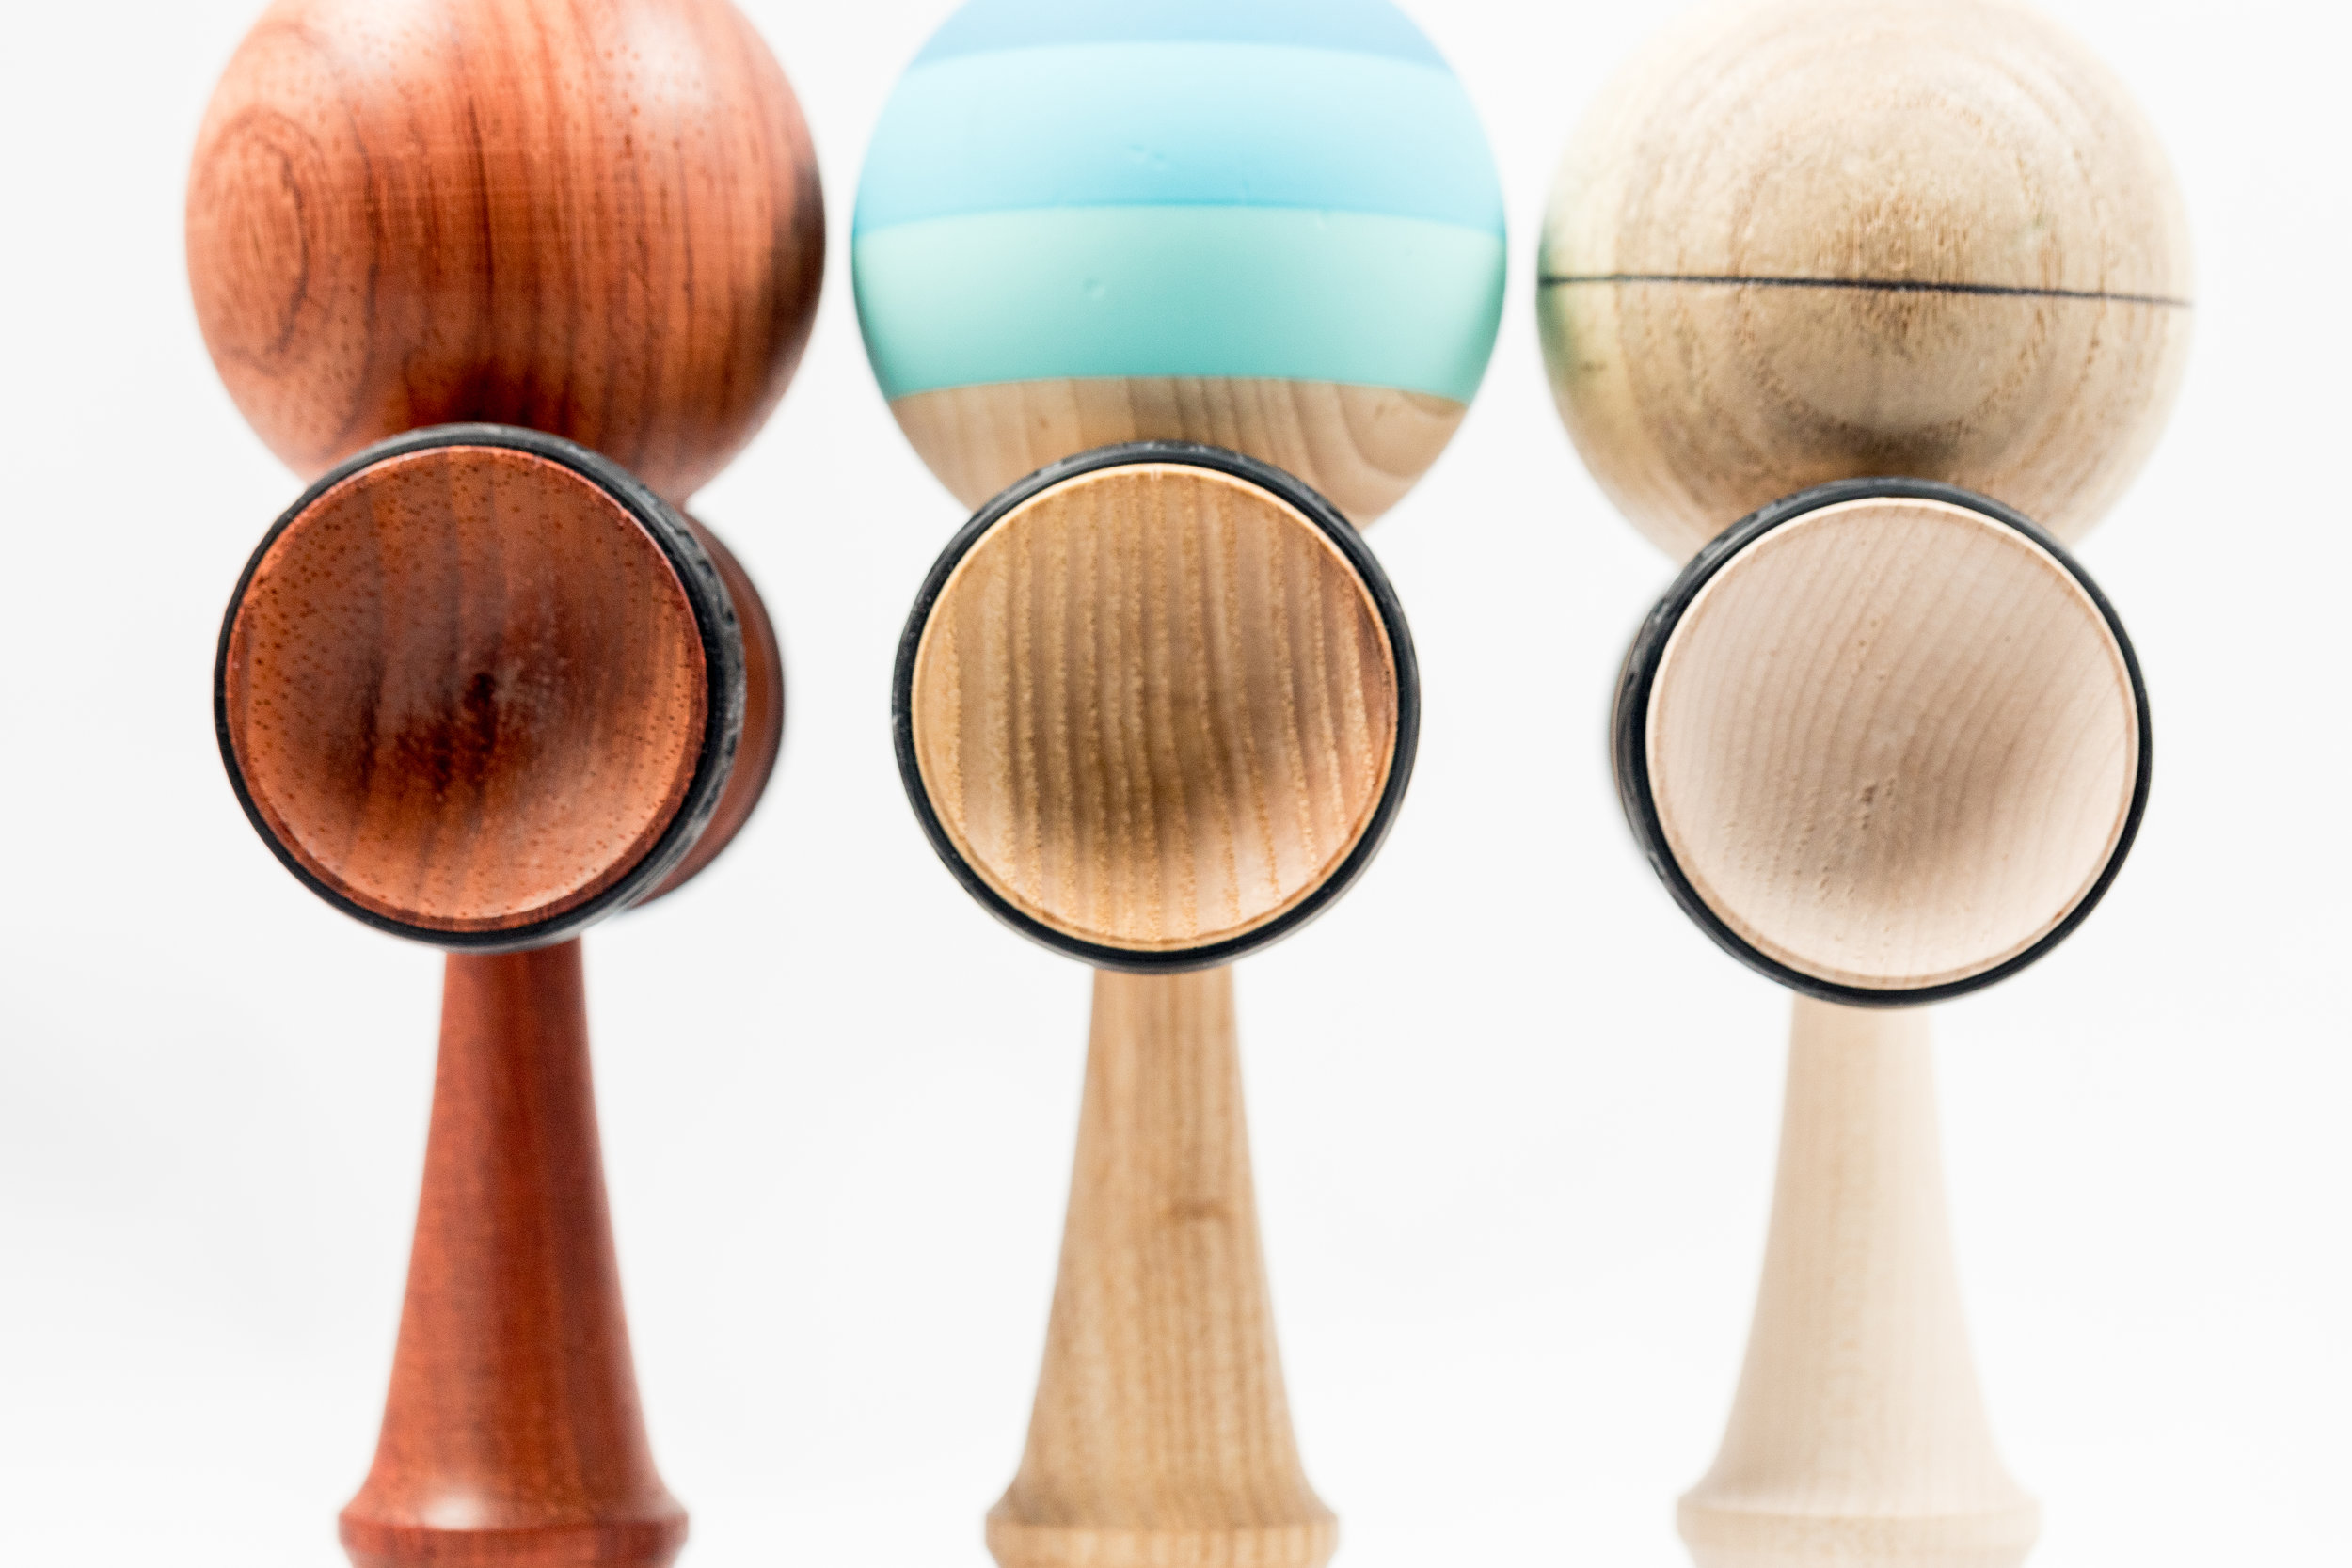 kendama-accessories-band-weight-lunars-learn